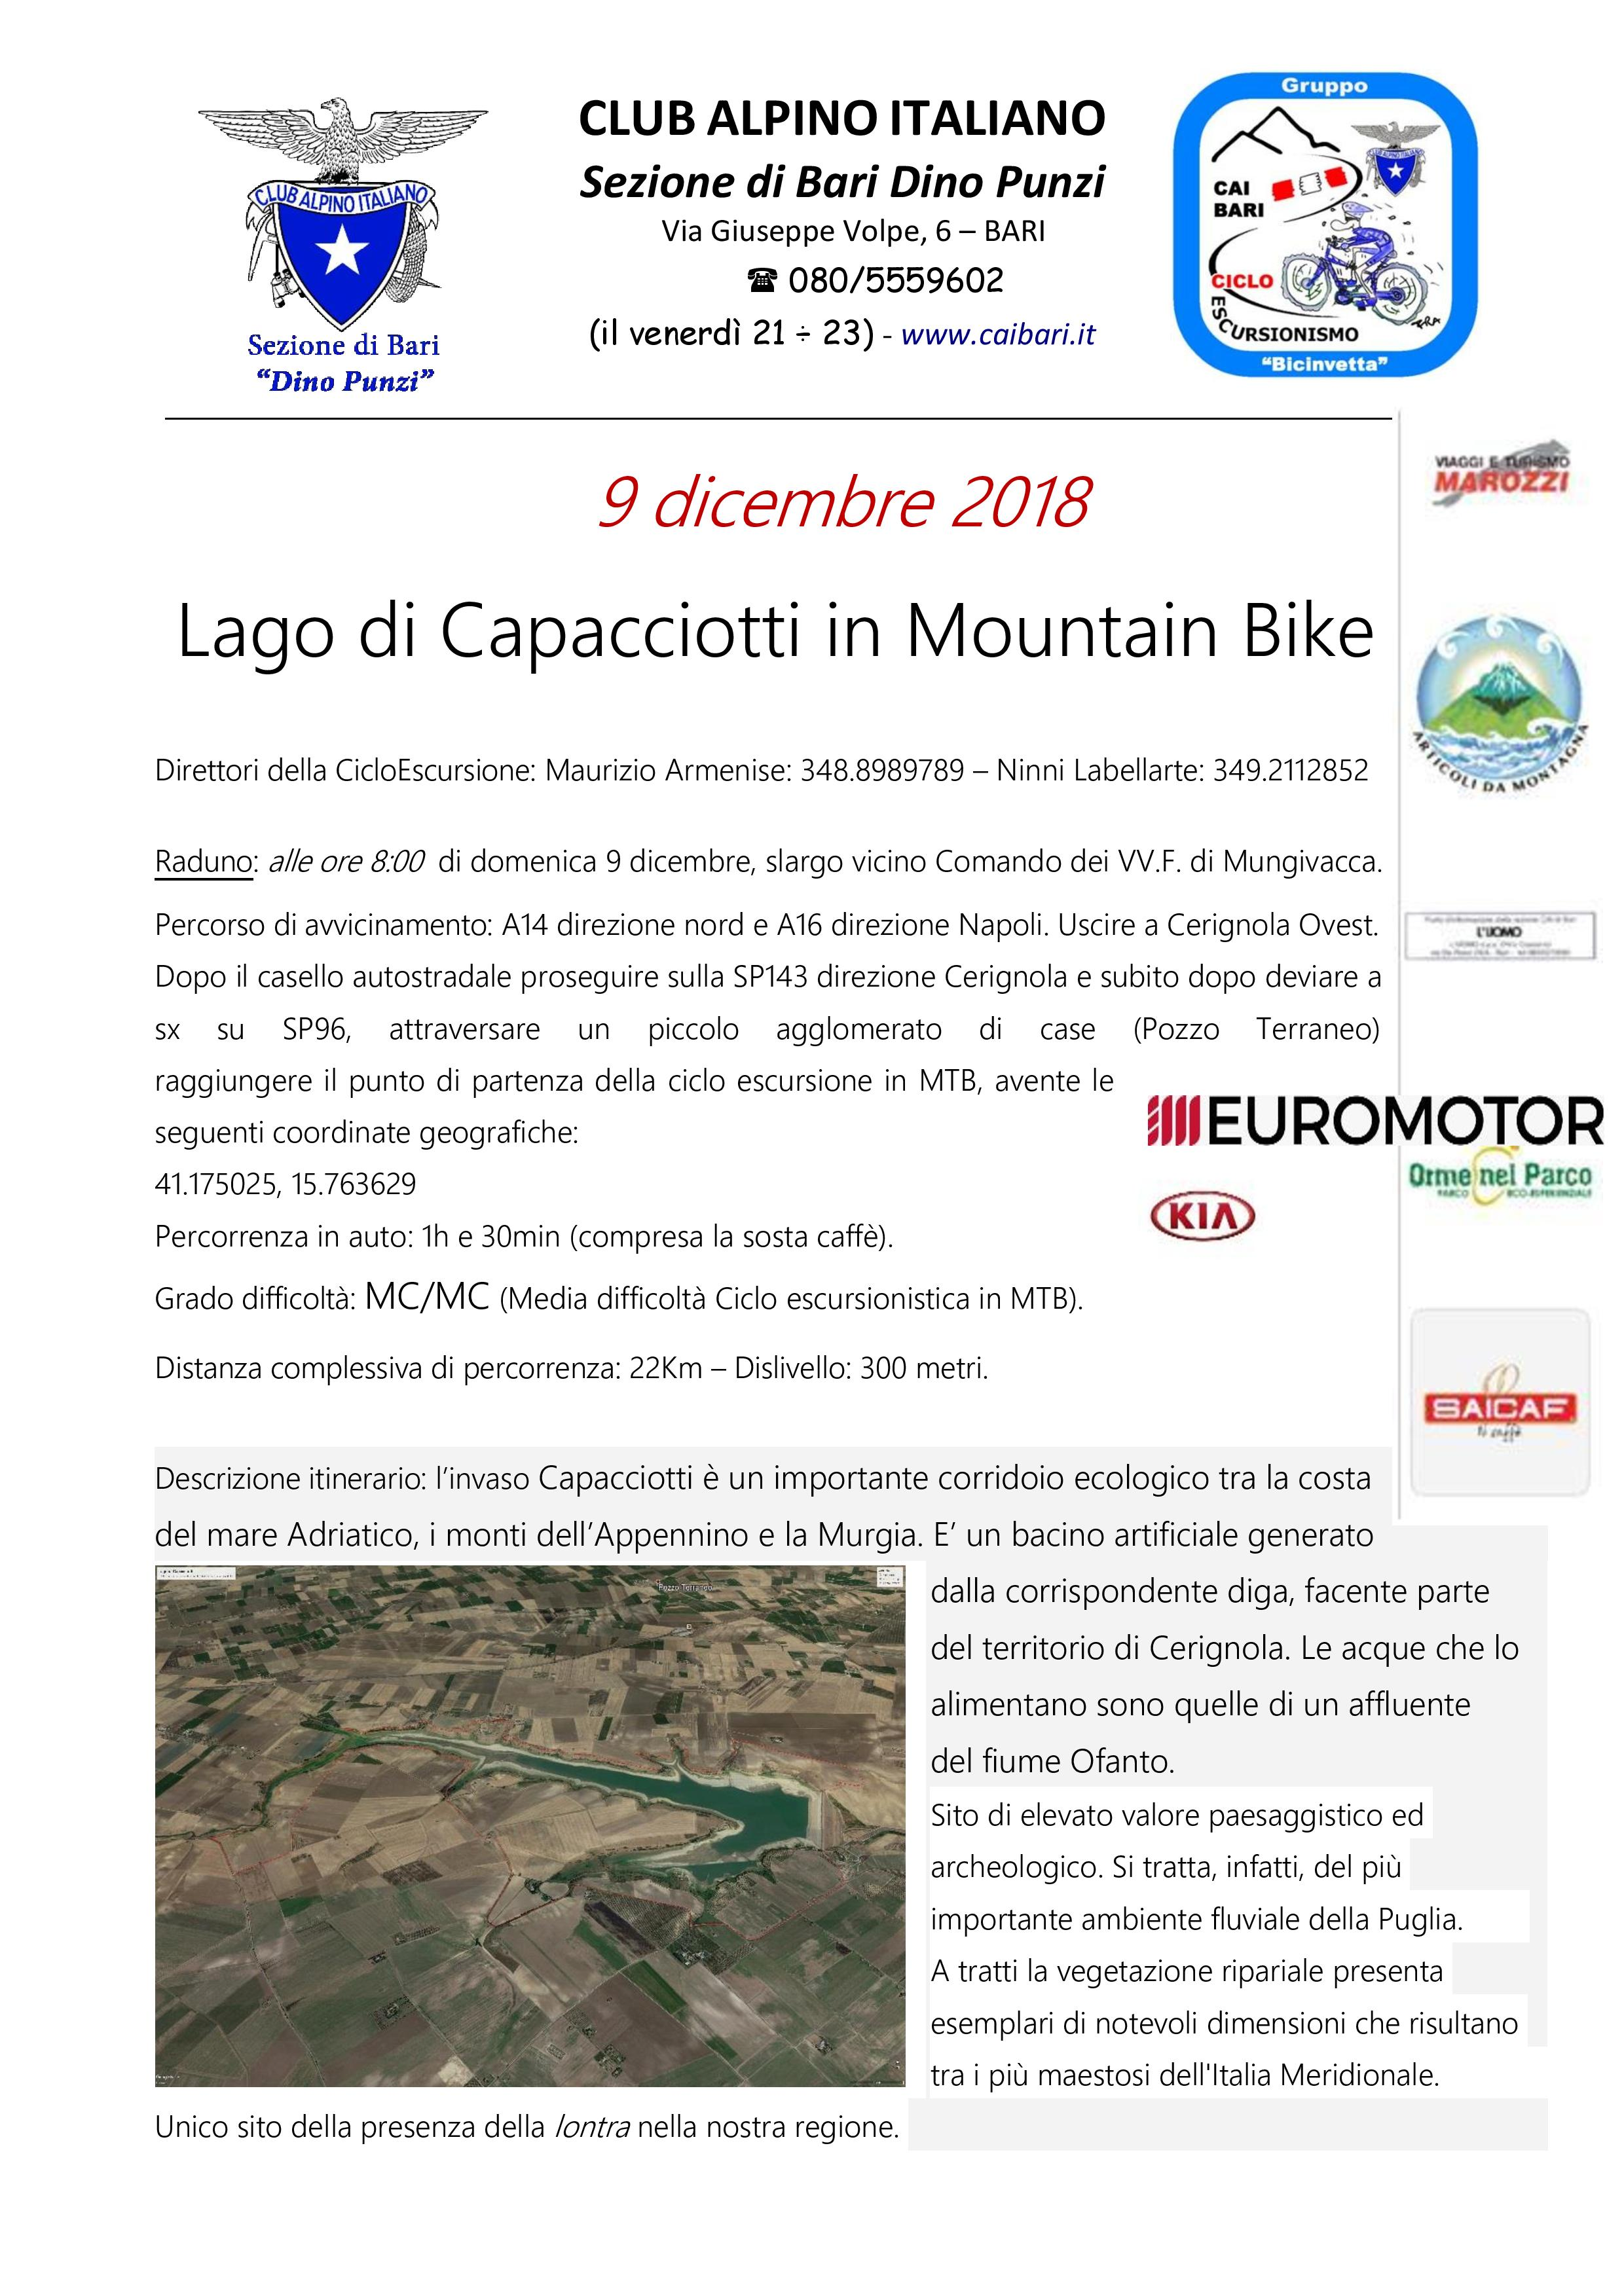 Lago di Capacciotti in Mountain Bike